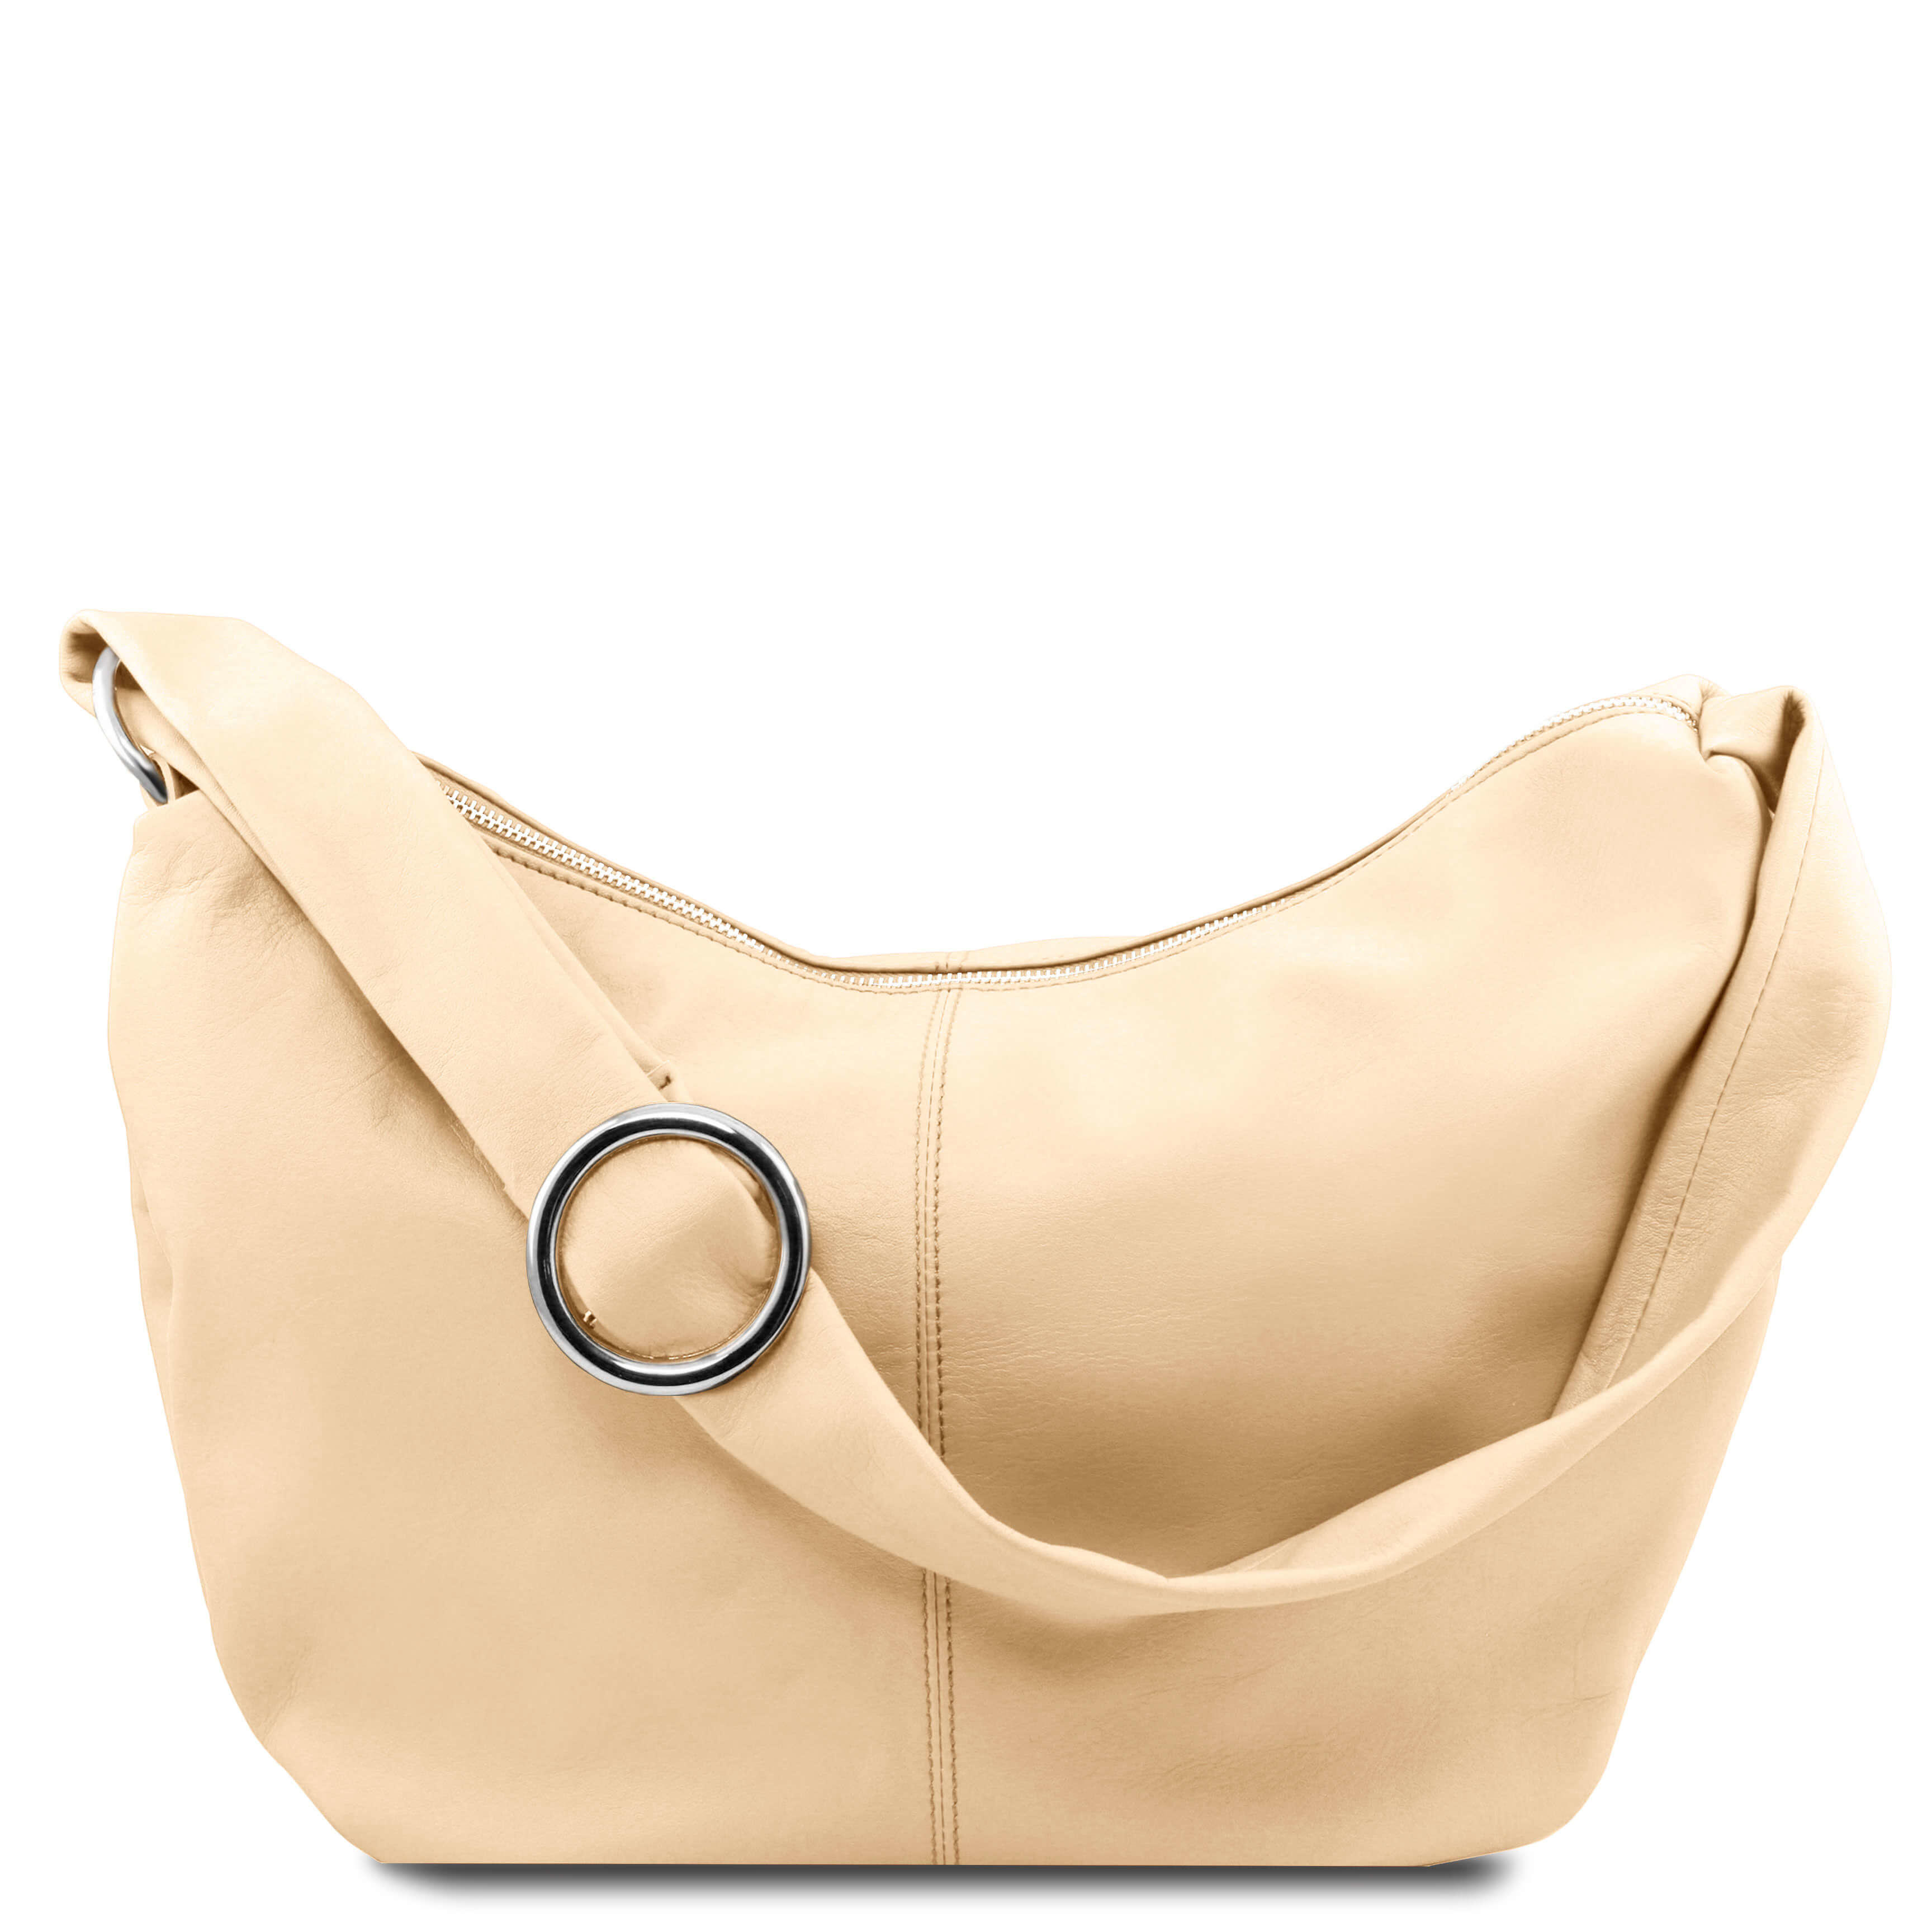 TL140900 Tuscany Leather Yvette Hand - Shoulder Bag Genuine Soft Sauvage Leather